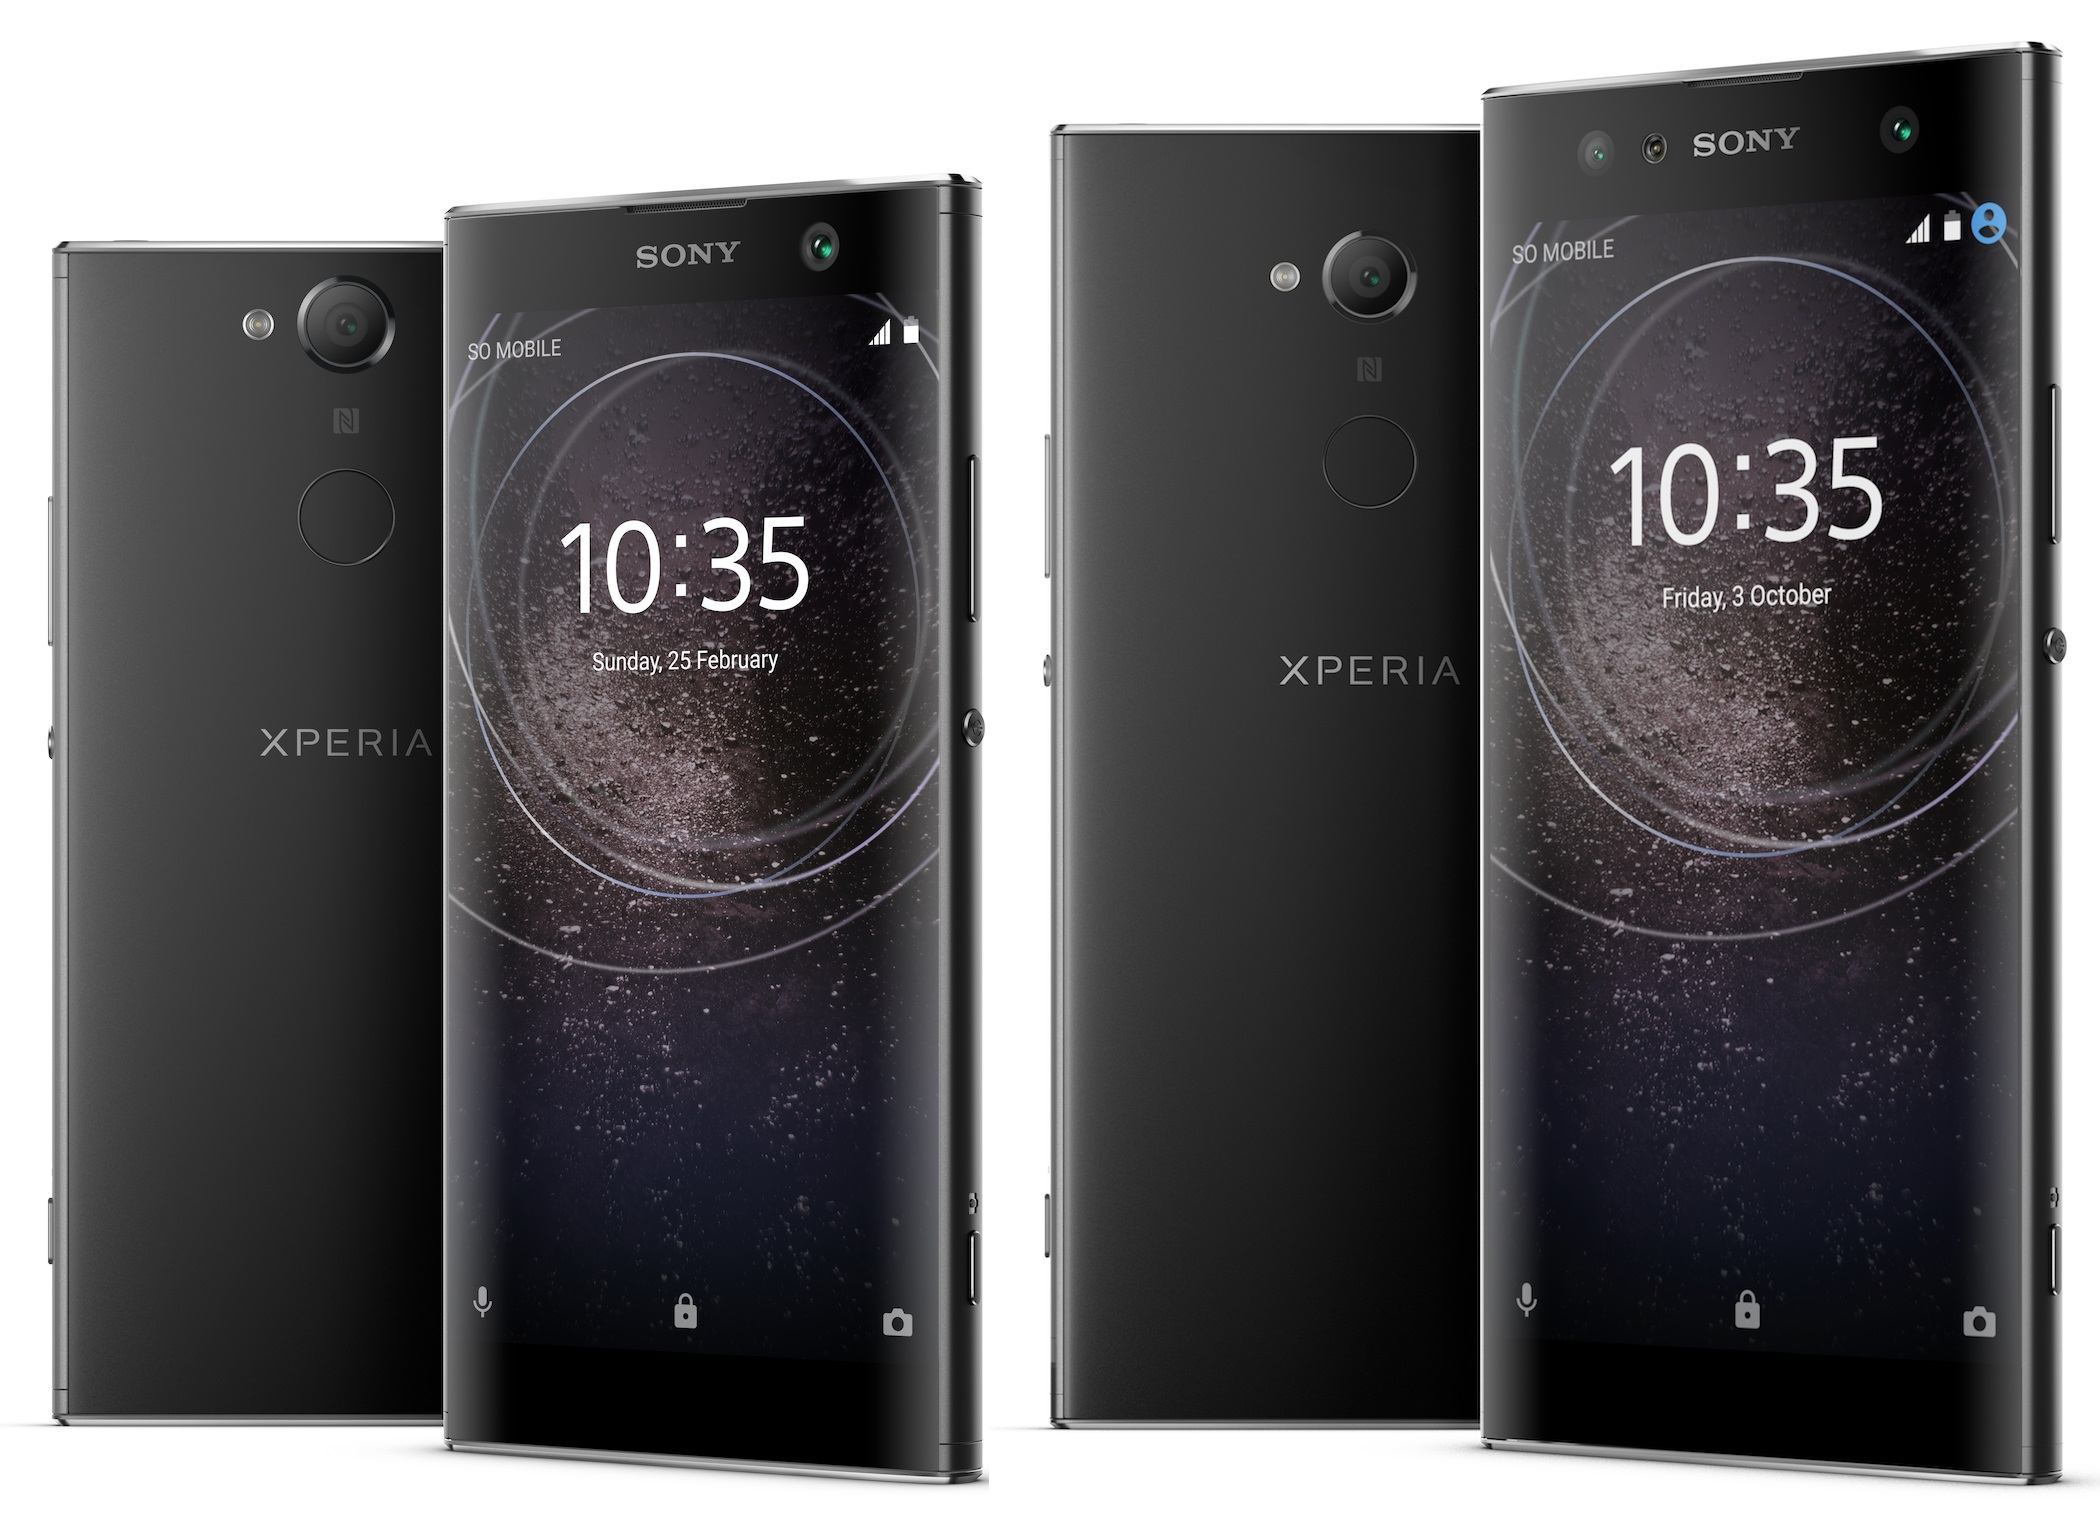 Sony Xperia XA2 vs XA2 Ultra: What's the difference?